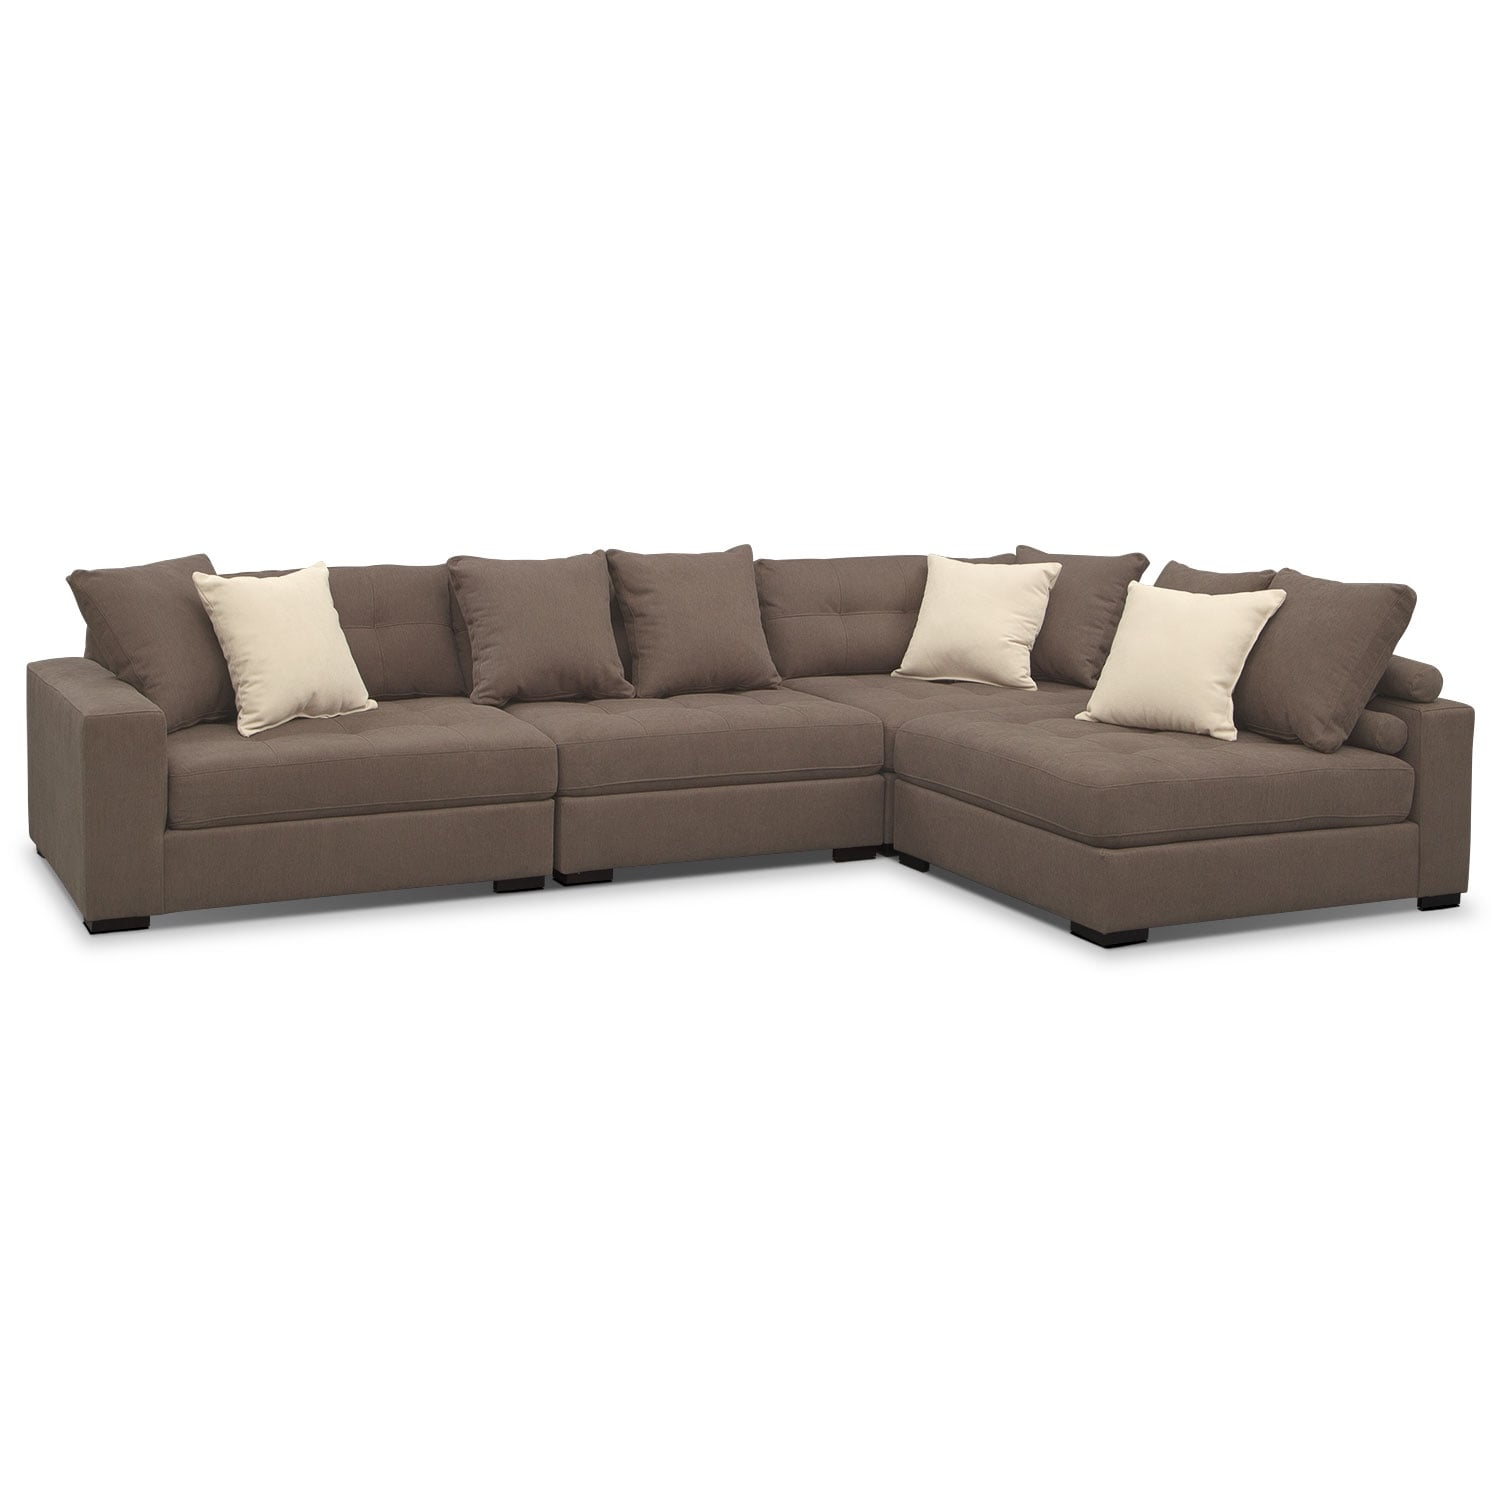 Venti 4 piece sectional mocha american signature furniture for 4 piece living room furniture